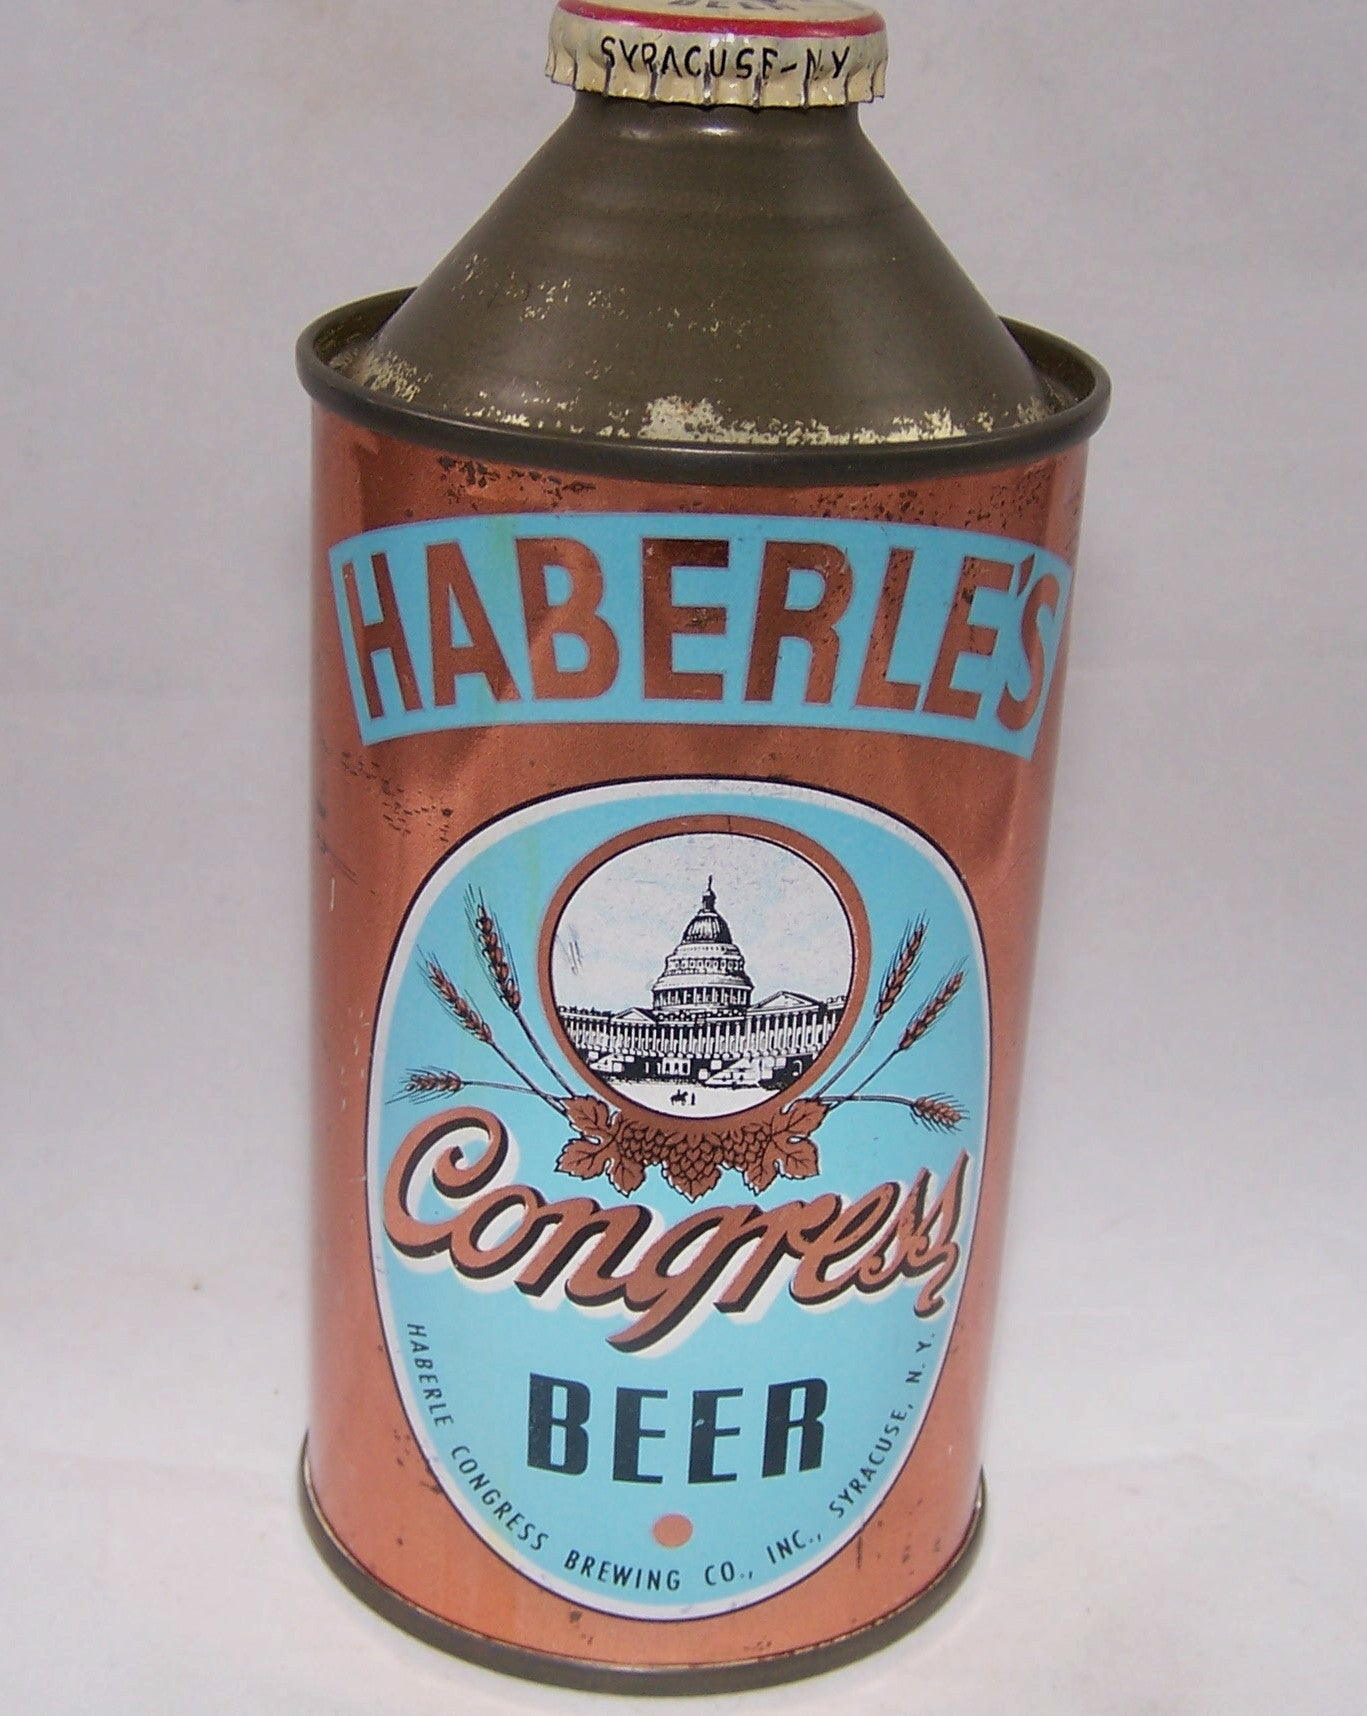 Haberle's Congress Beer, USBC 138-13, Grade 1/1- Sold on 11/29/16